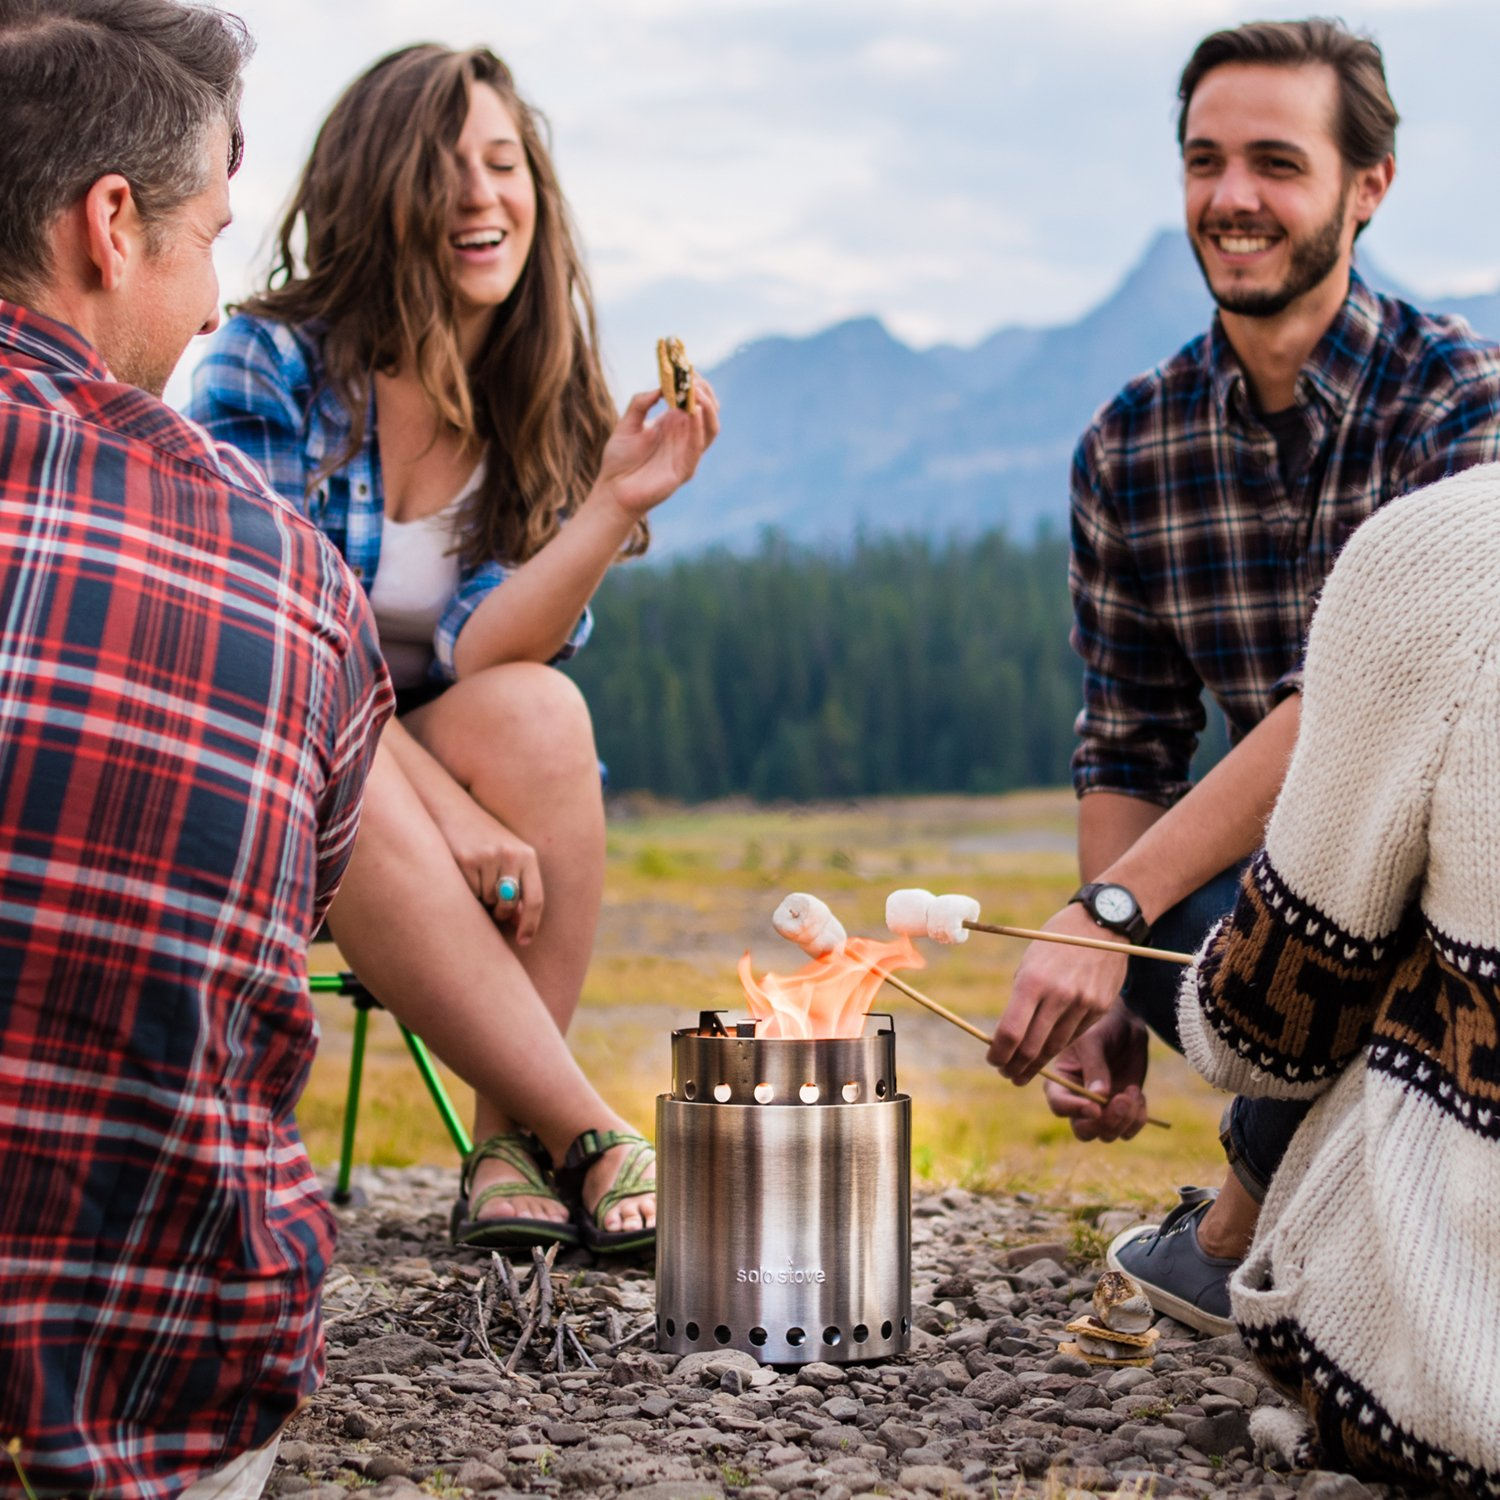 Solo Stove Campfire - 4+ Person Compact Wood Burning Camp Stove for Backpacking, Camping, Survival. Burns Twigs - NO Batteries or Liquid Fuel Gas Canister Required. by Solo Stove (Image #6)